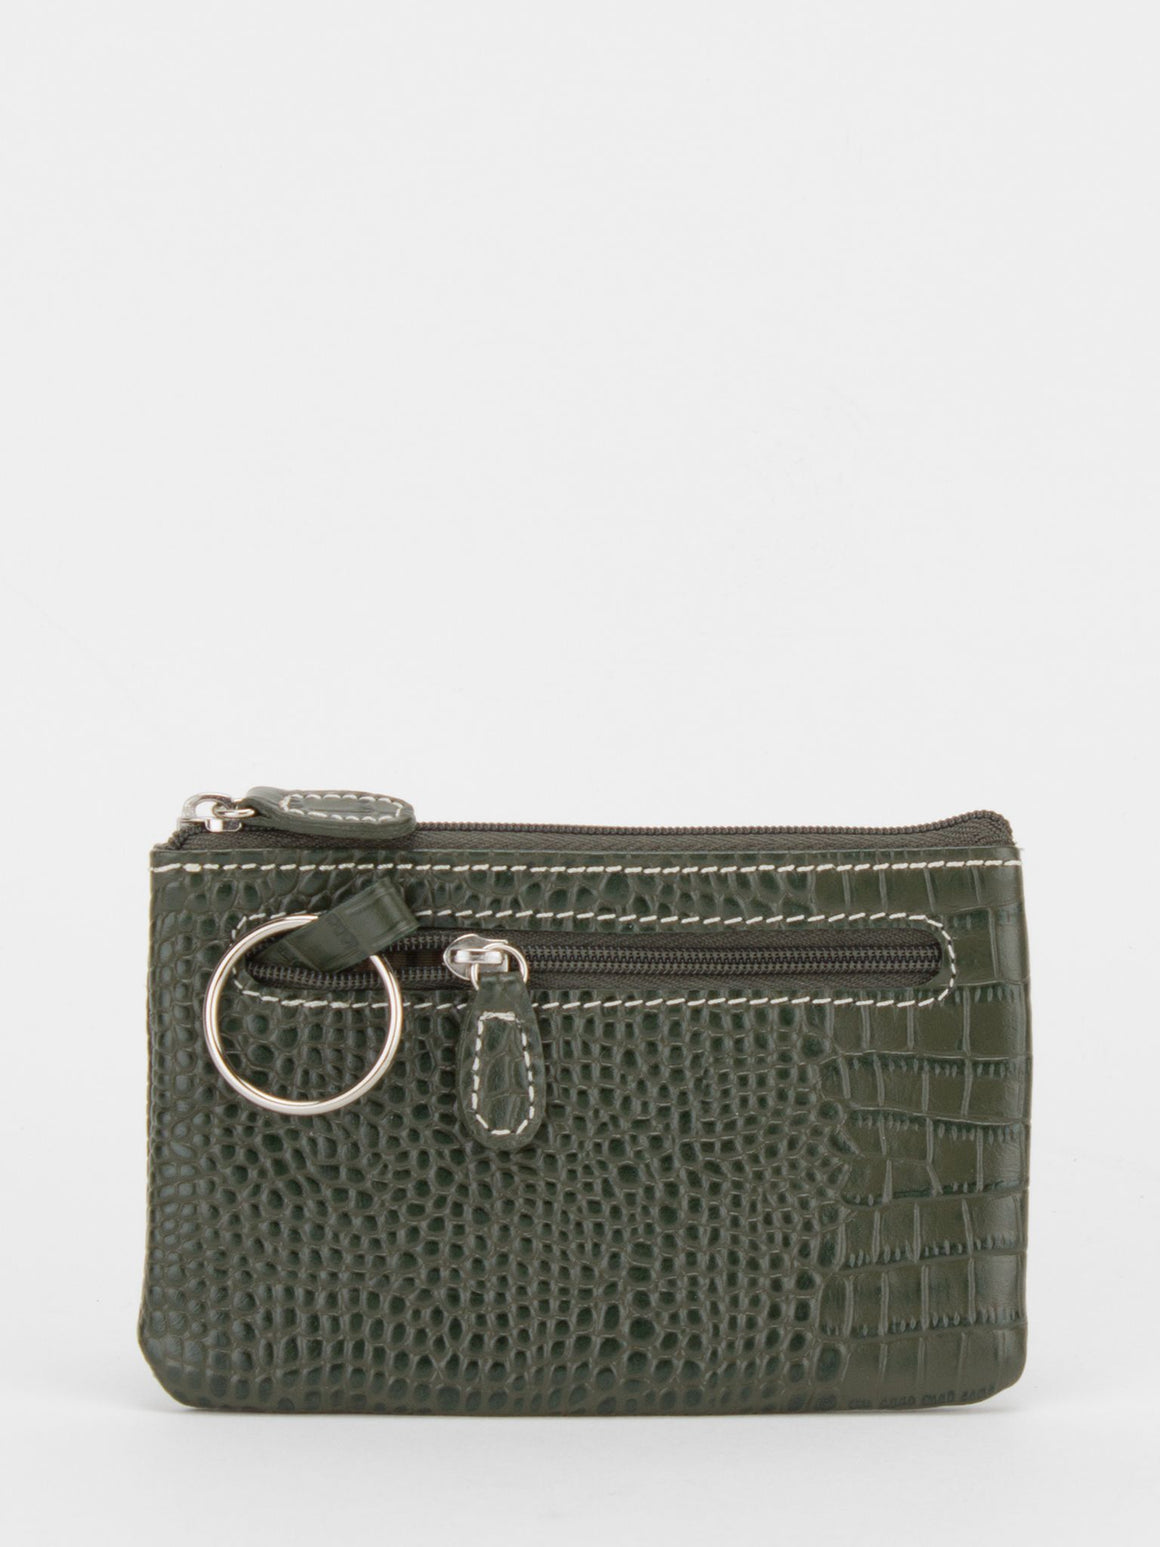 Alyssa Croc Leather Zip Pouch - Olive